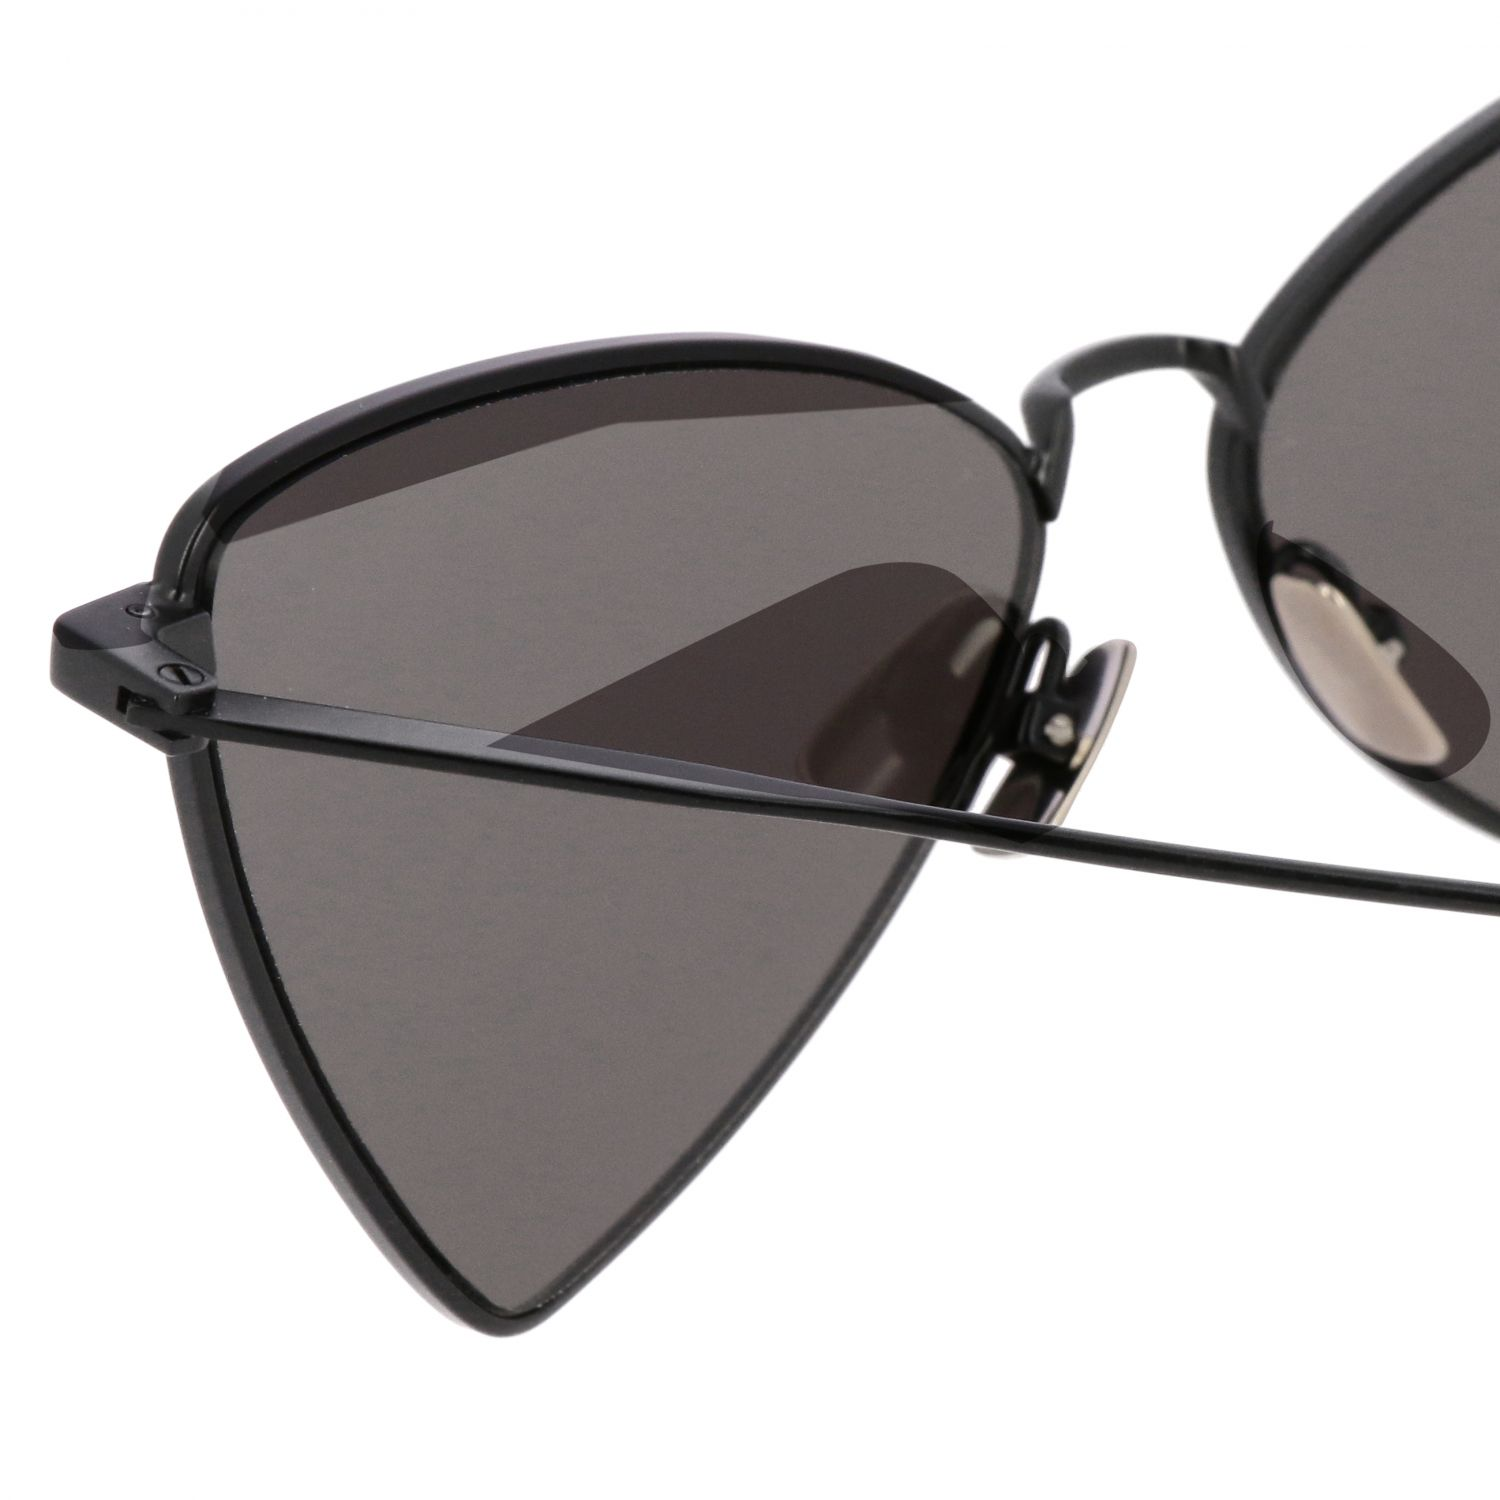 Brille Saint Laurent: JERRY Saint Laurent Sonnenbrille in Metall Brücke 13 Auktion 145 schwarz 3